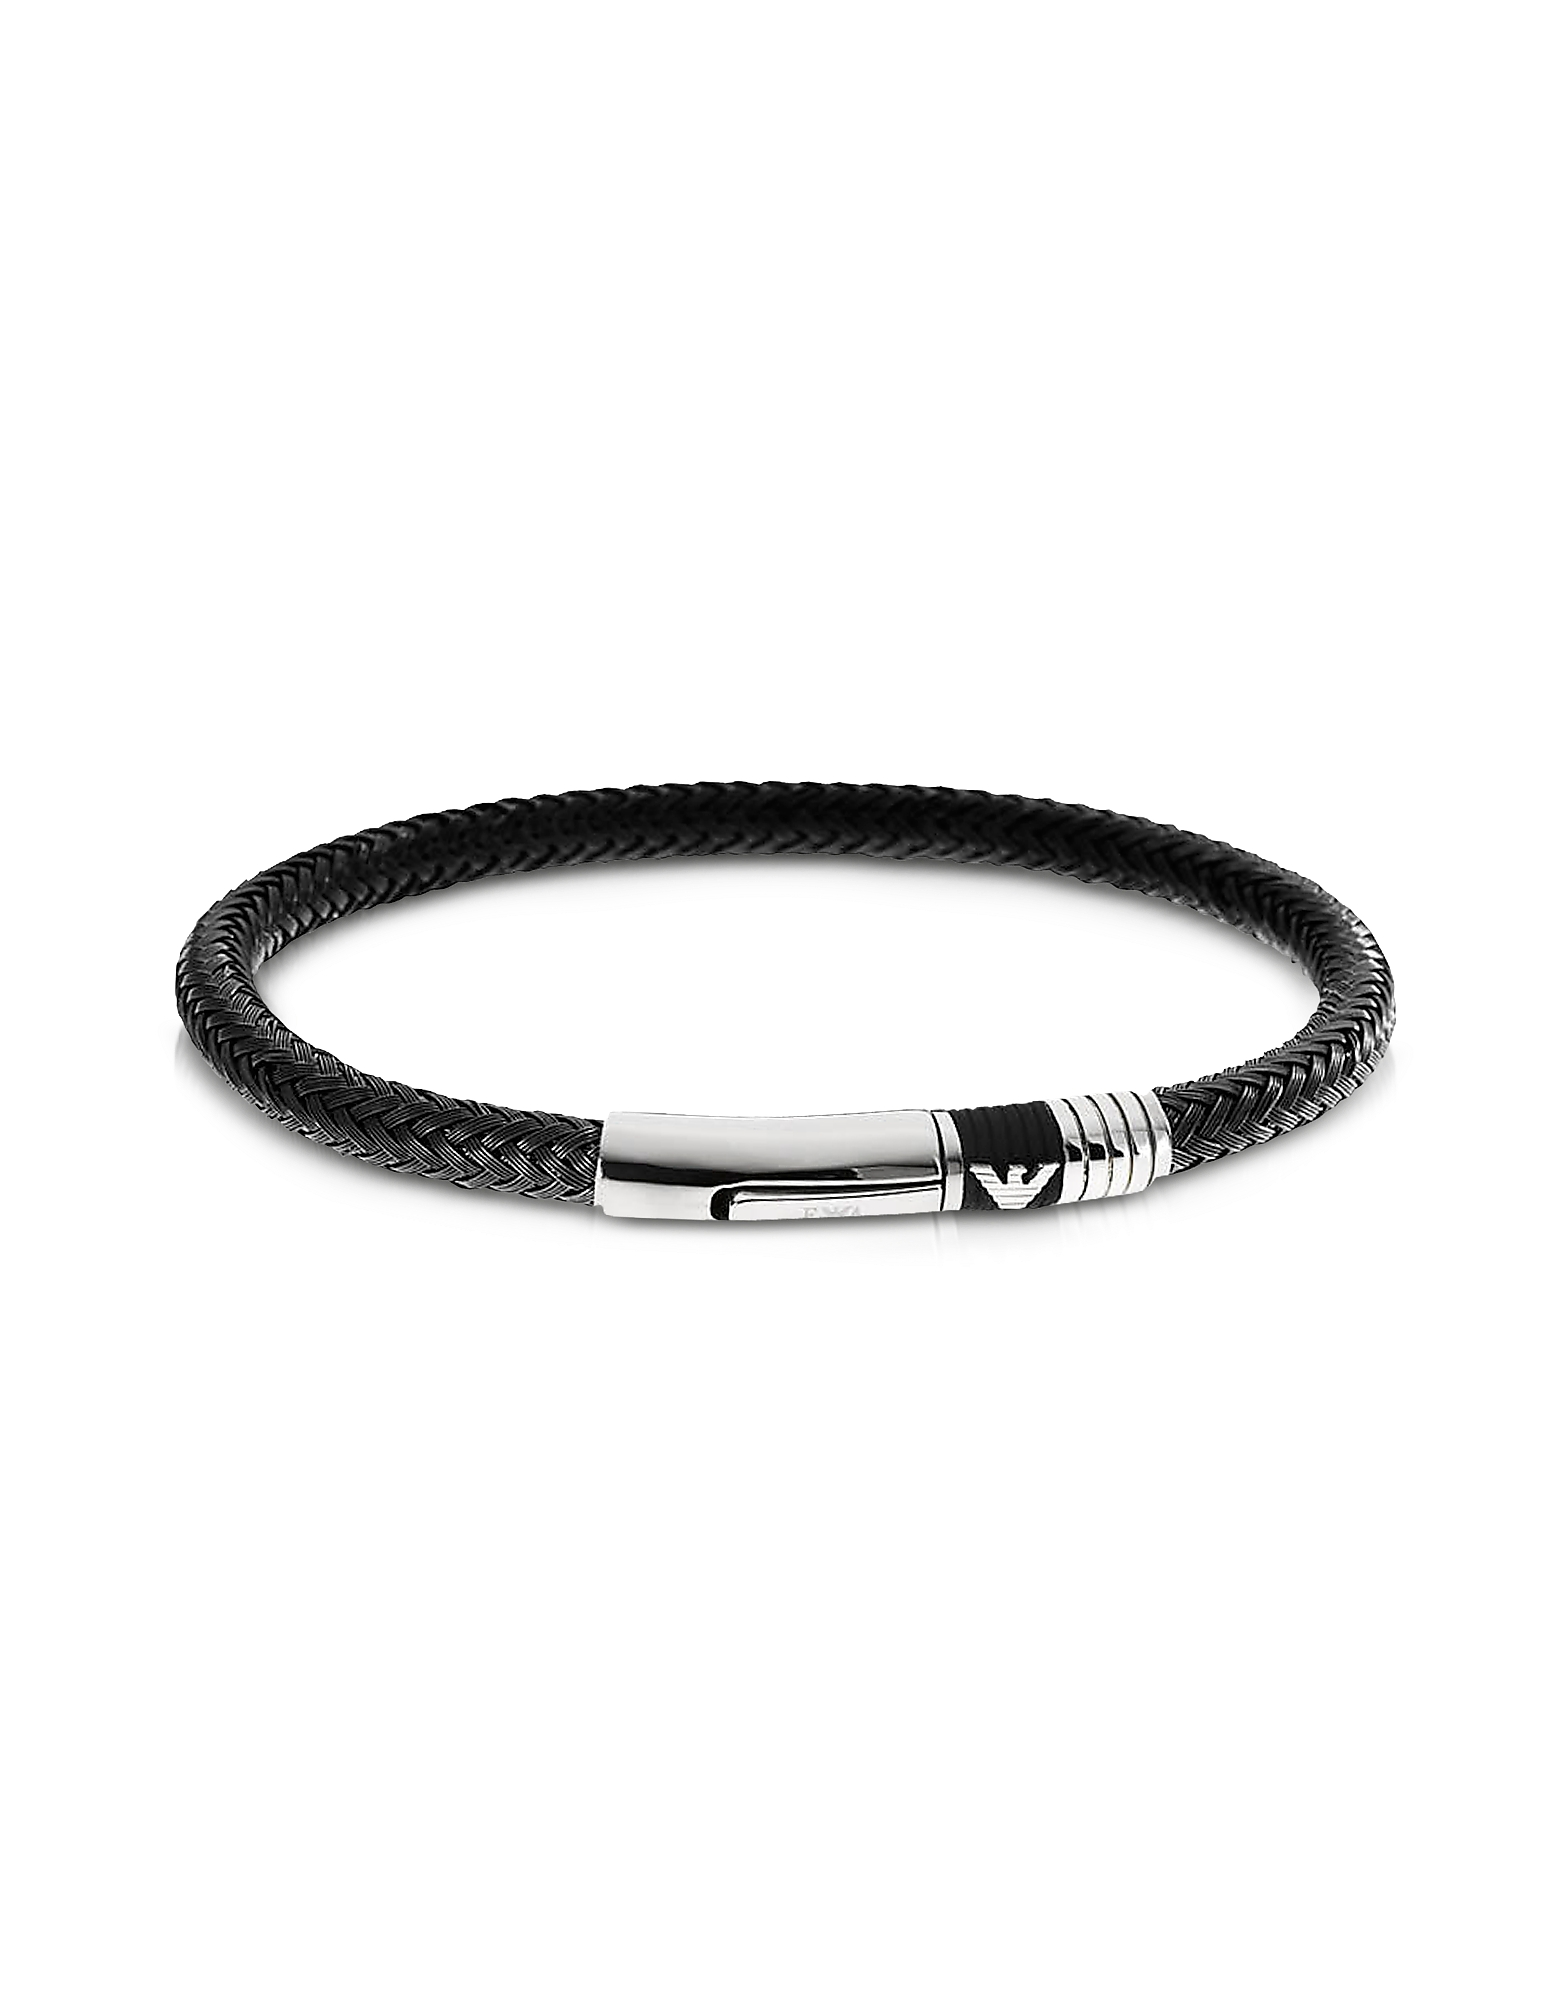 Iconic Woven Stainless Steel Men's Bracelet от Forzieri.com INT